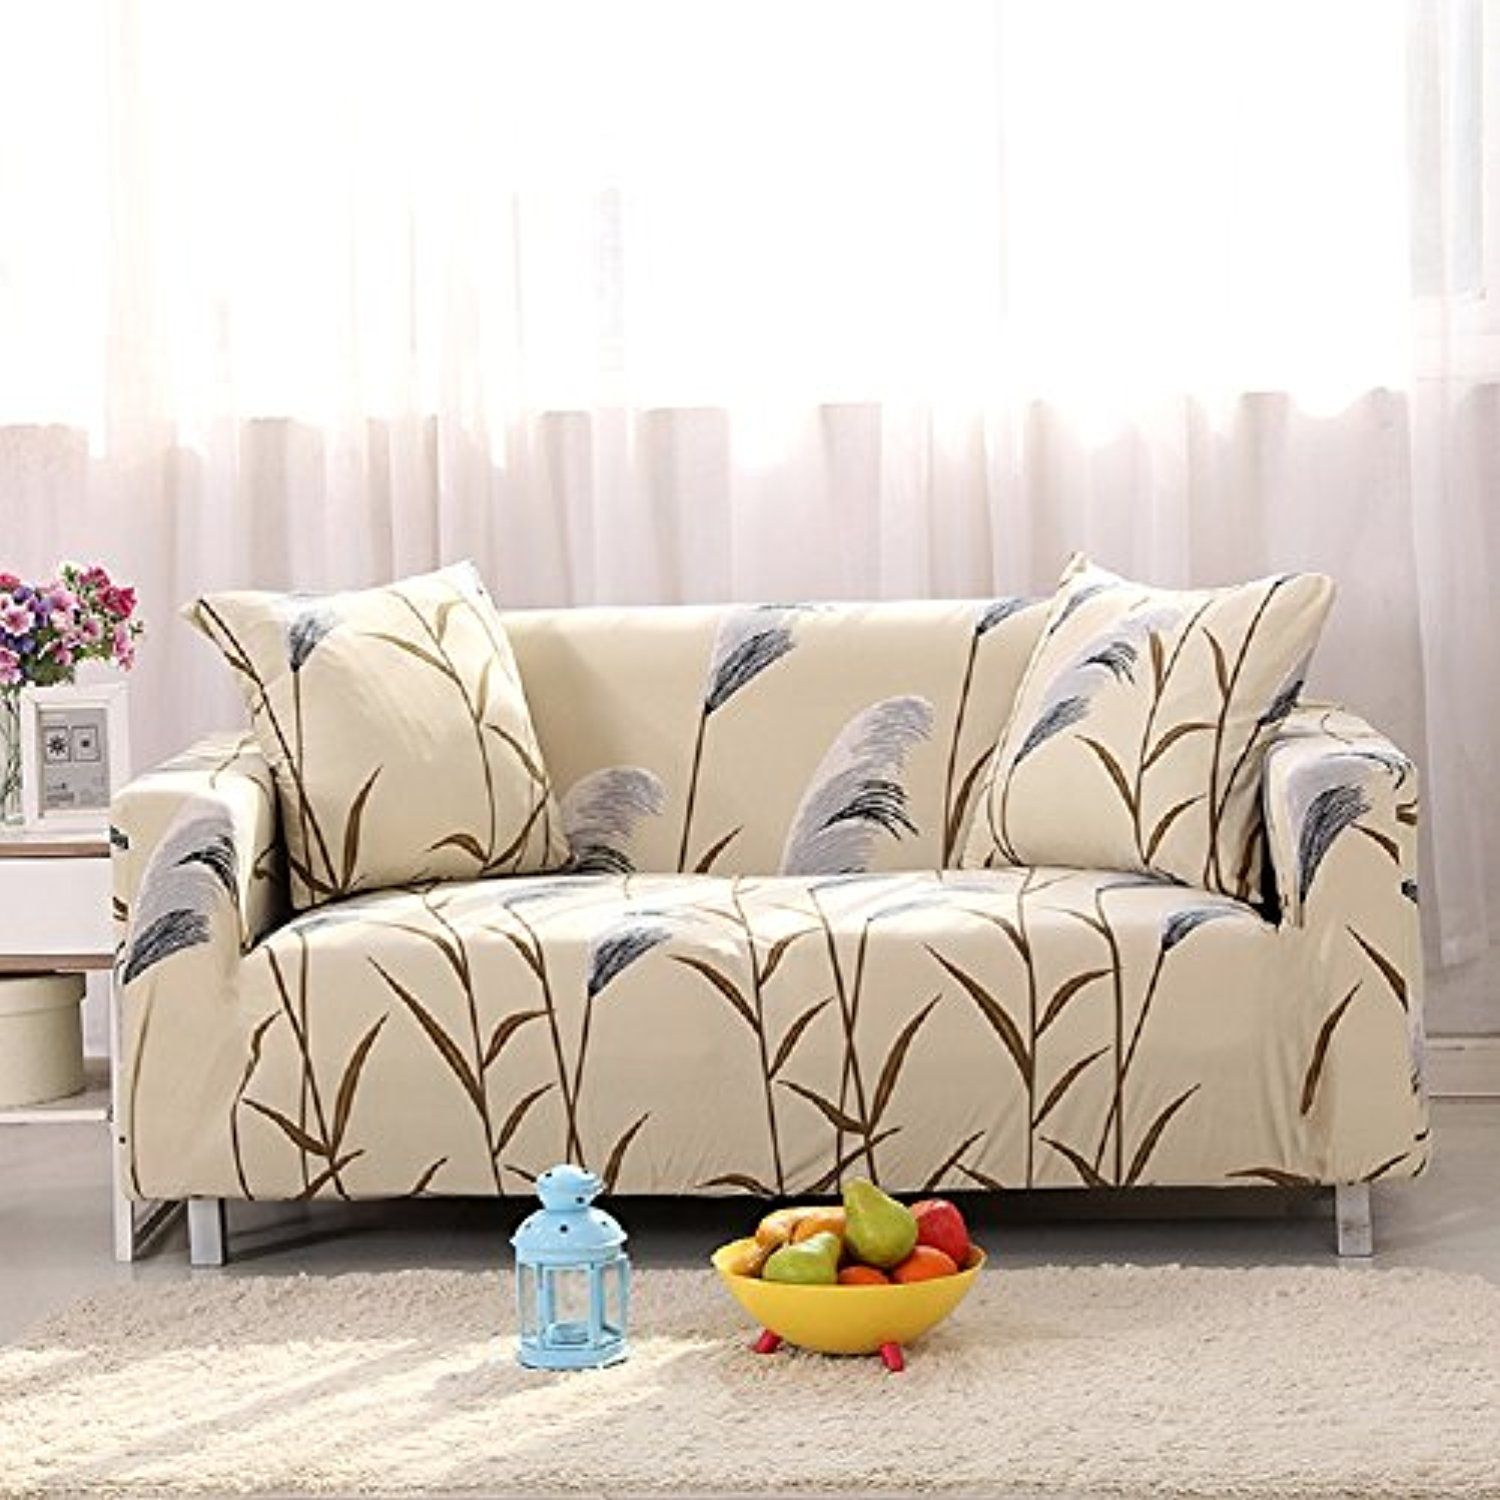 Forcheer Stretch Couch Covers Sofa Slipcovers Fitted Loveseat Cover Seat Furniture Protector Printed Homedc Couch Covers Sofa Covers Couch Covers Slipcovers